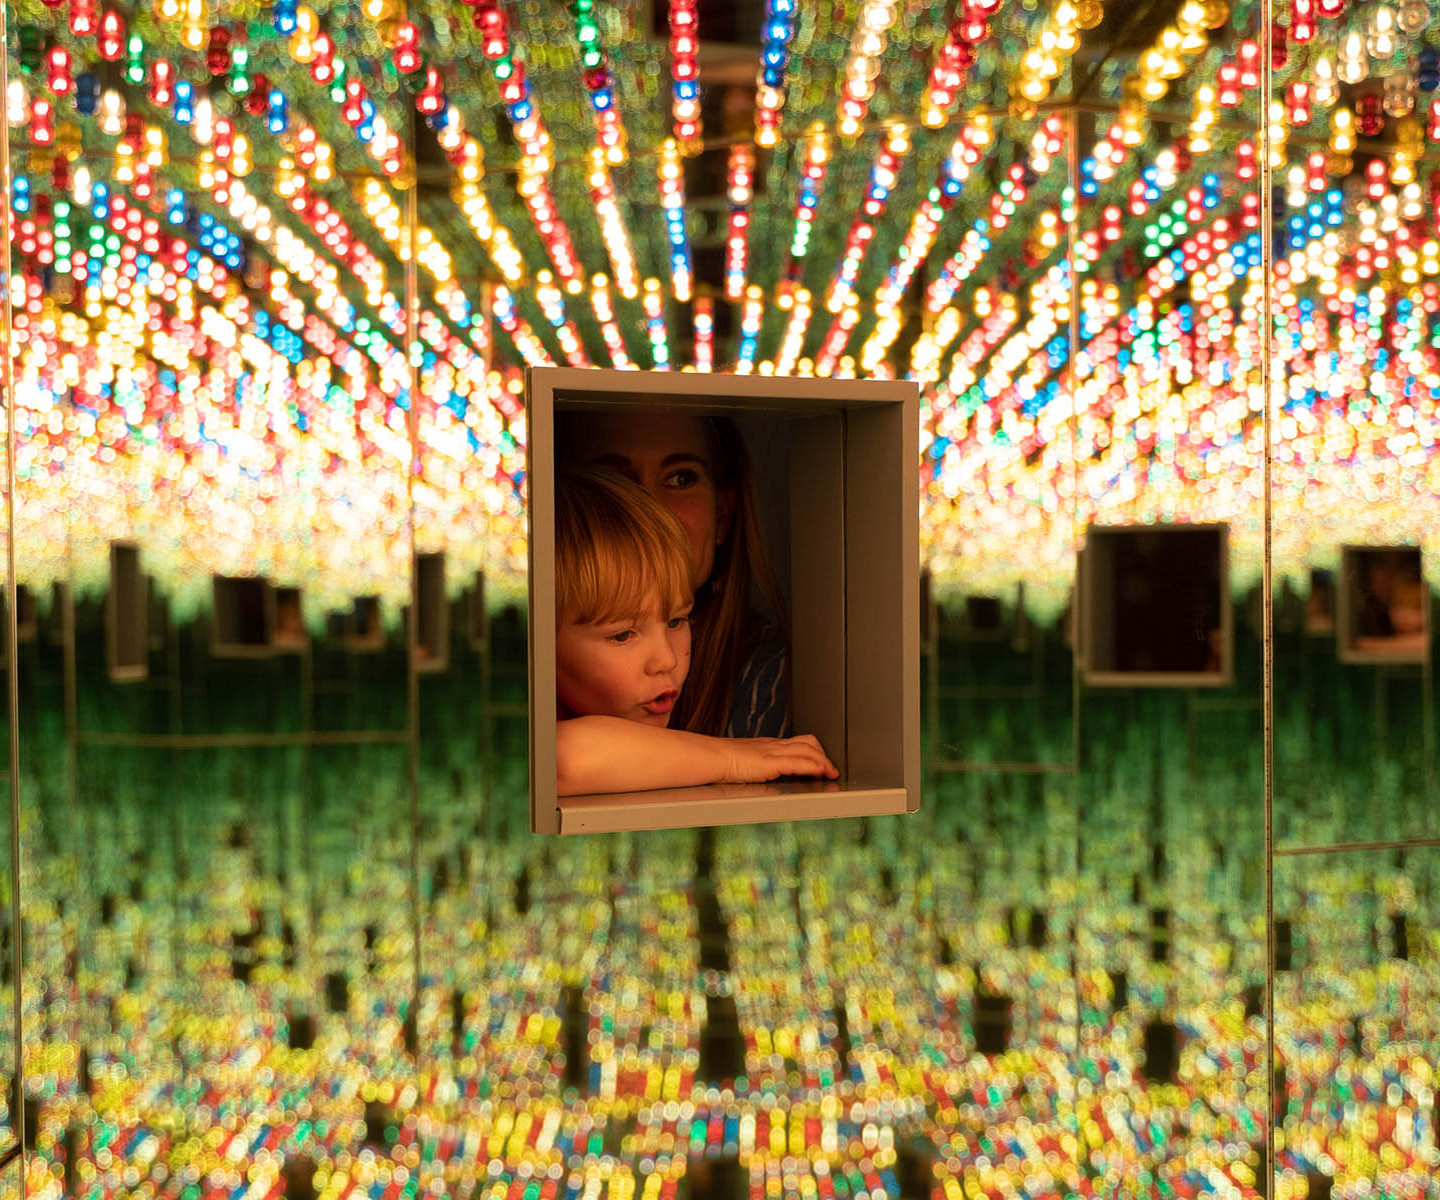 Infinity Mirrored Room—Love Forever (1966/1994)